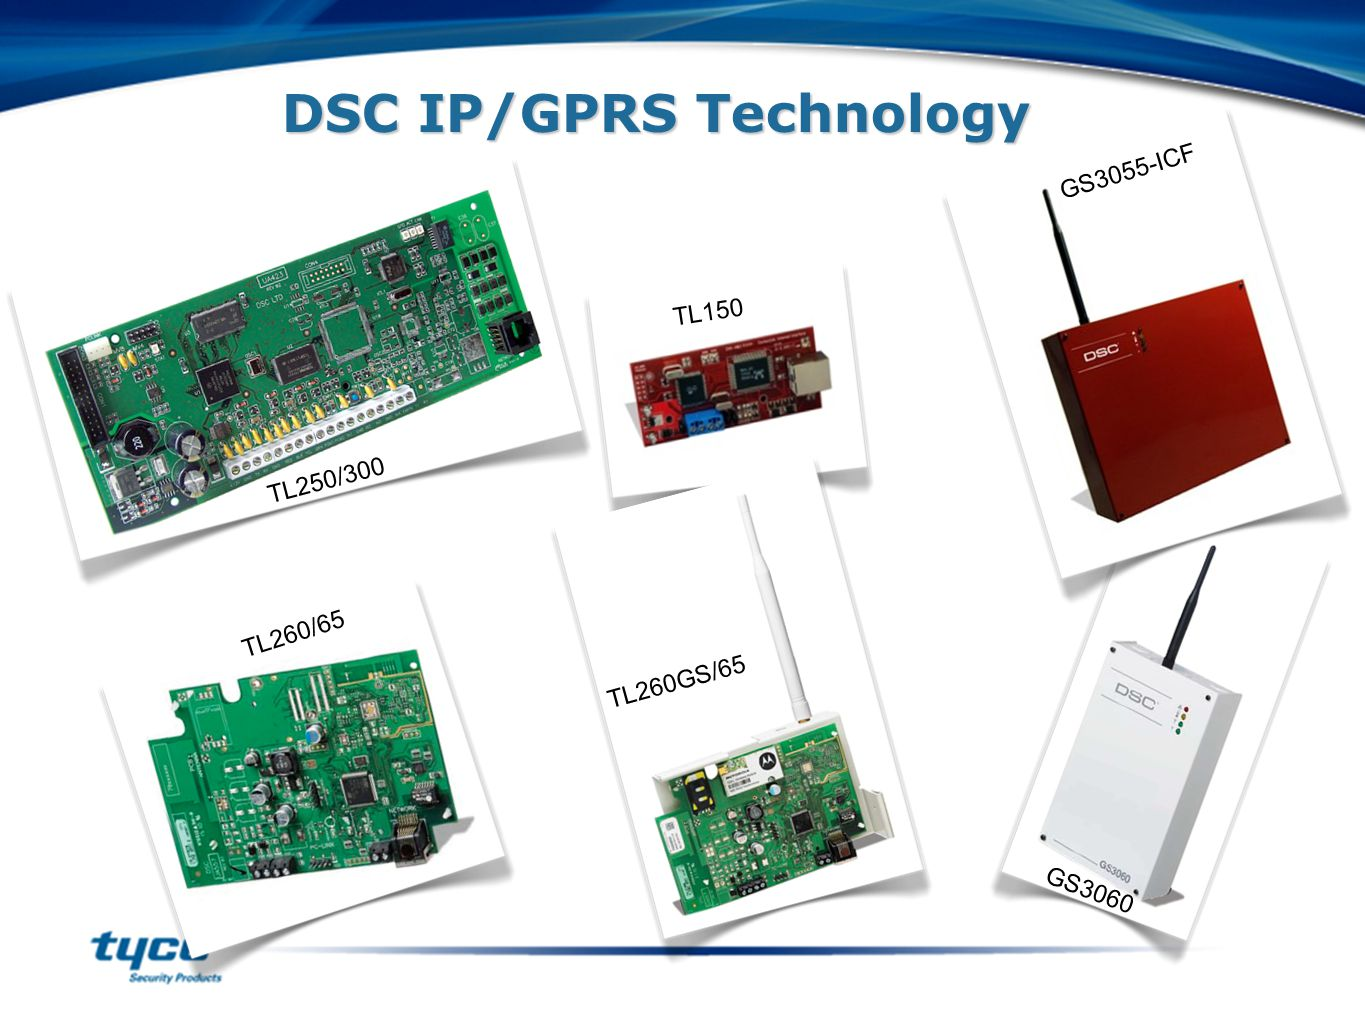 G Welcome To Our Dsc Impassa Ip Communicators Road Show Ppt 5010 Wiring Diagram 14